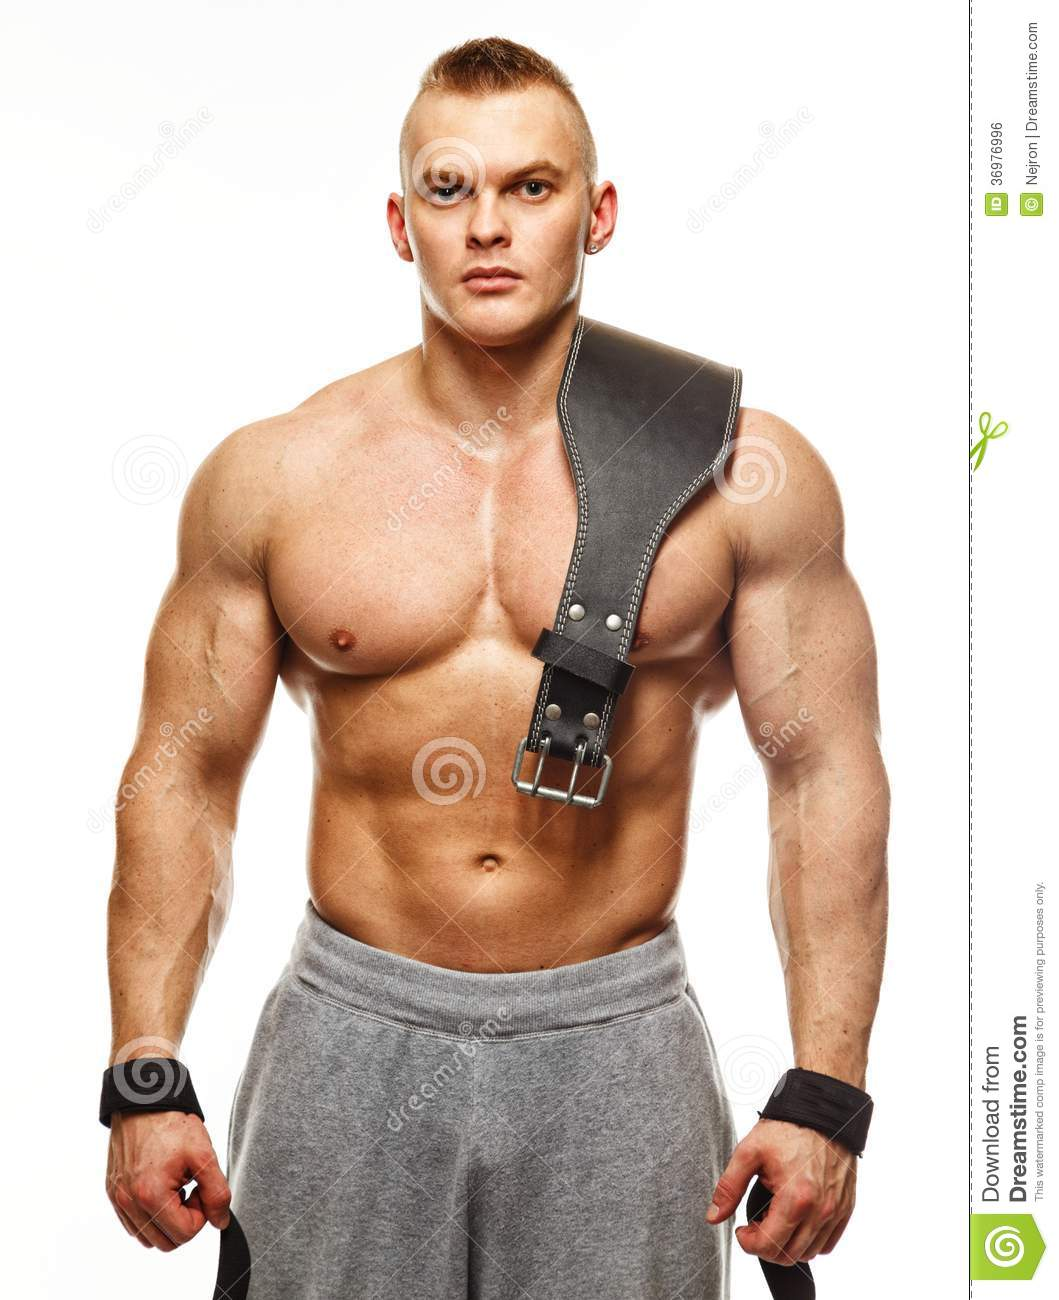 Man With Muscular Torso Posing Stock Photo Image Of Adult Muscle